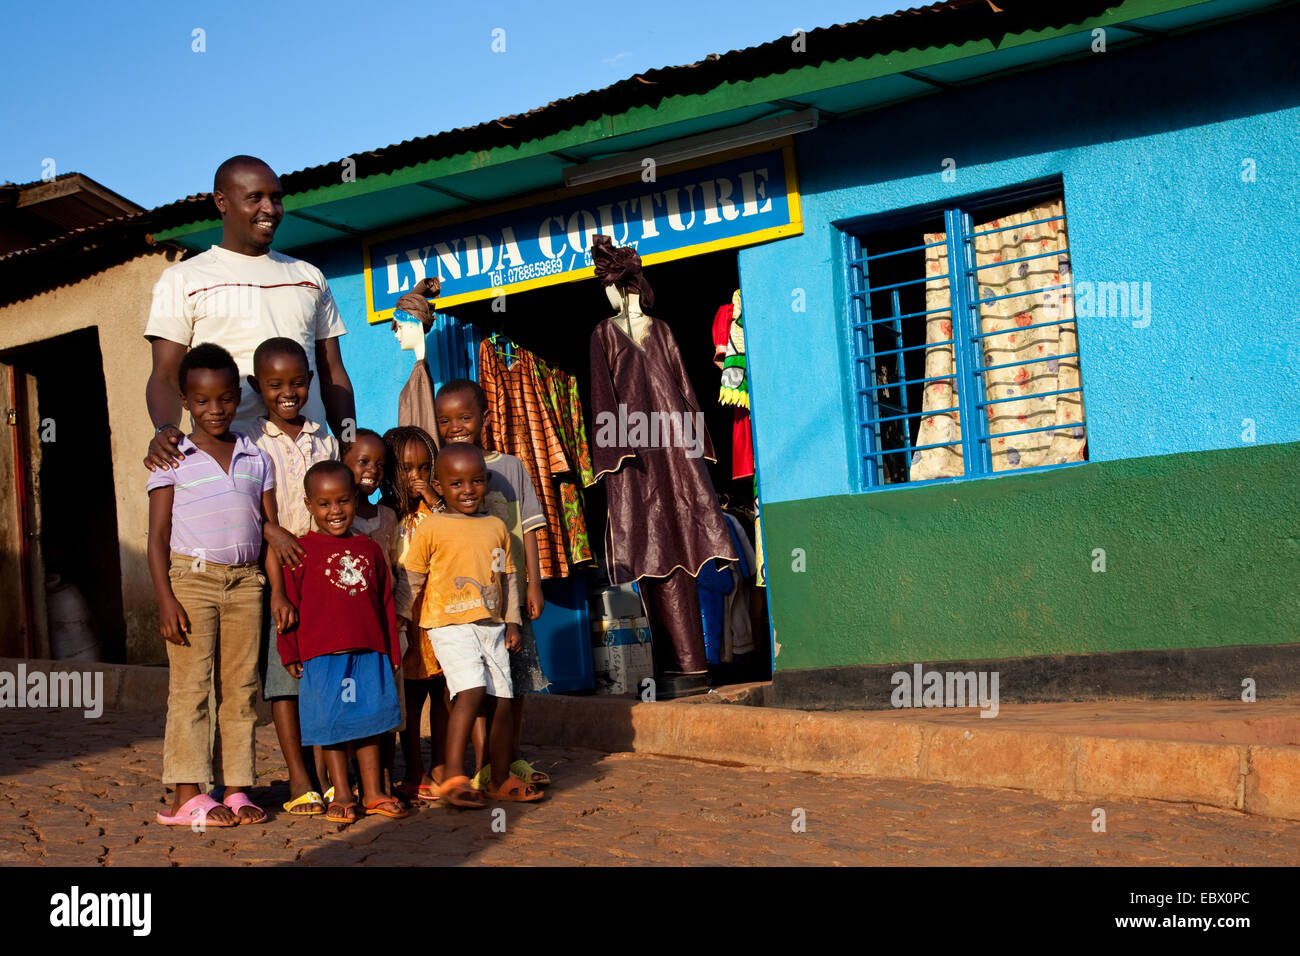 Tailer standing in front of his atelier with a group of children from the neighborhood, Rwanda, Nyamirambo, Kigali - Stock Image